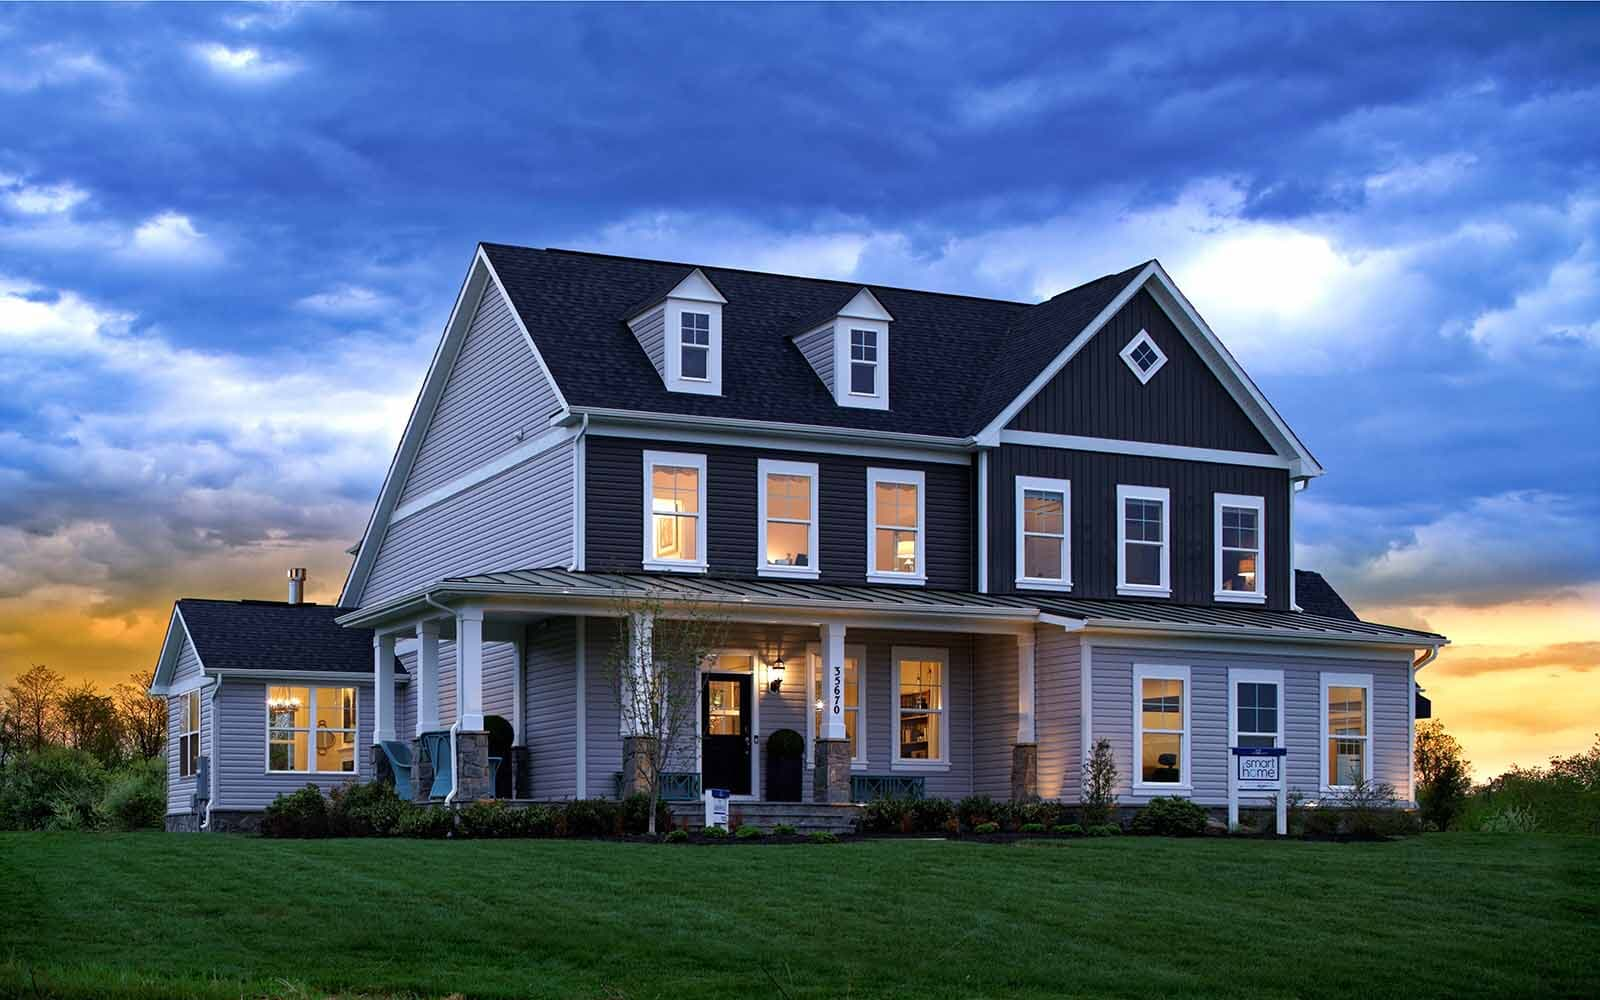 Cresswell-exterior-single-family-homes-leesburg-va-waterford-manor-brookfield-residential